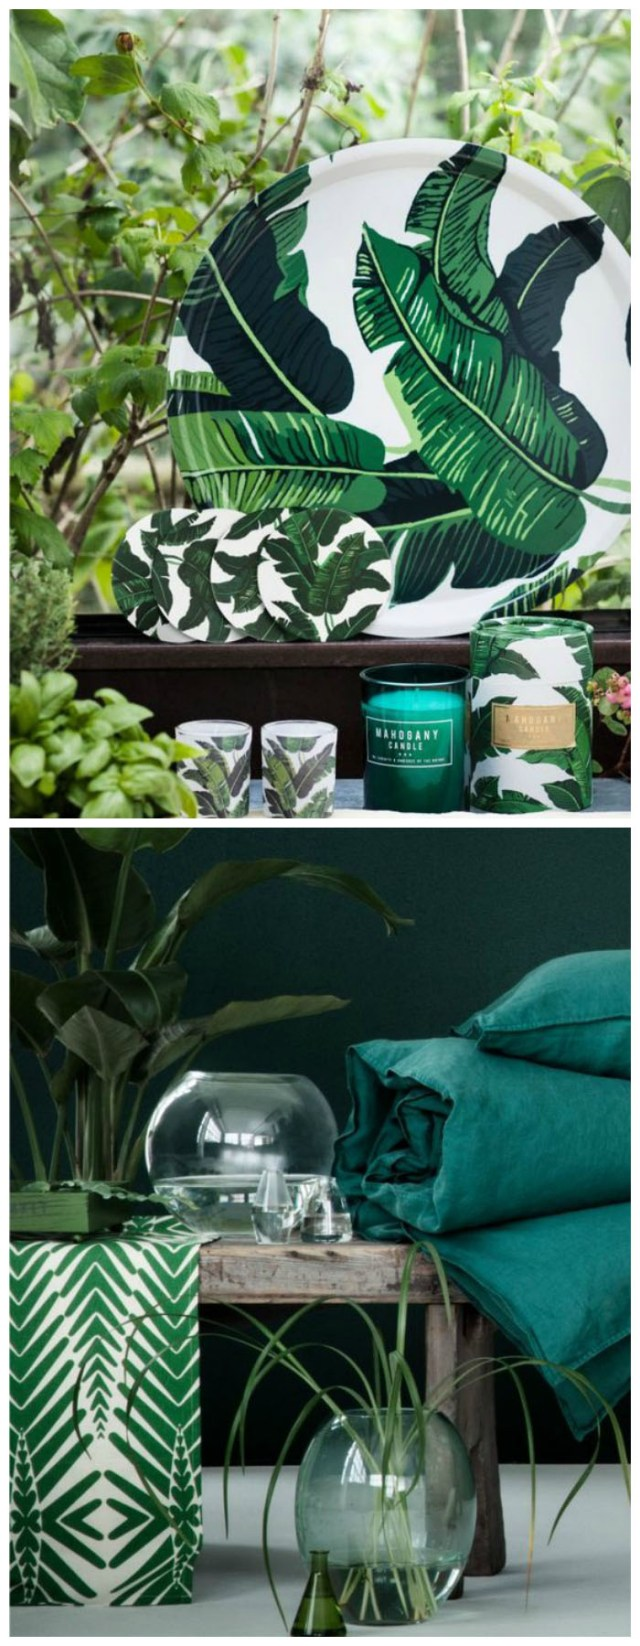 Tendance déco Tropical - H&M Home